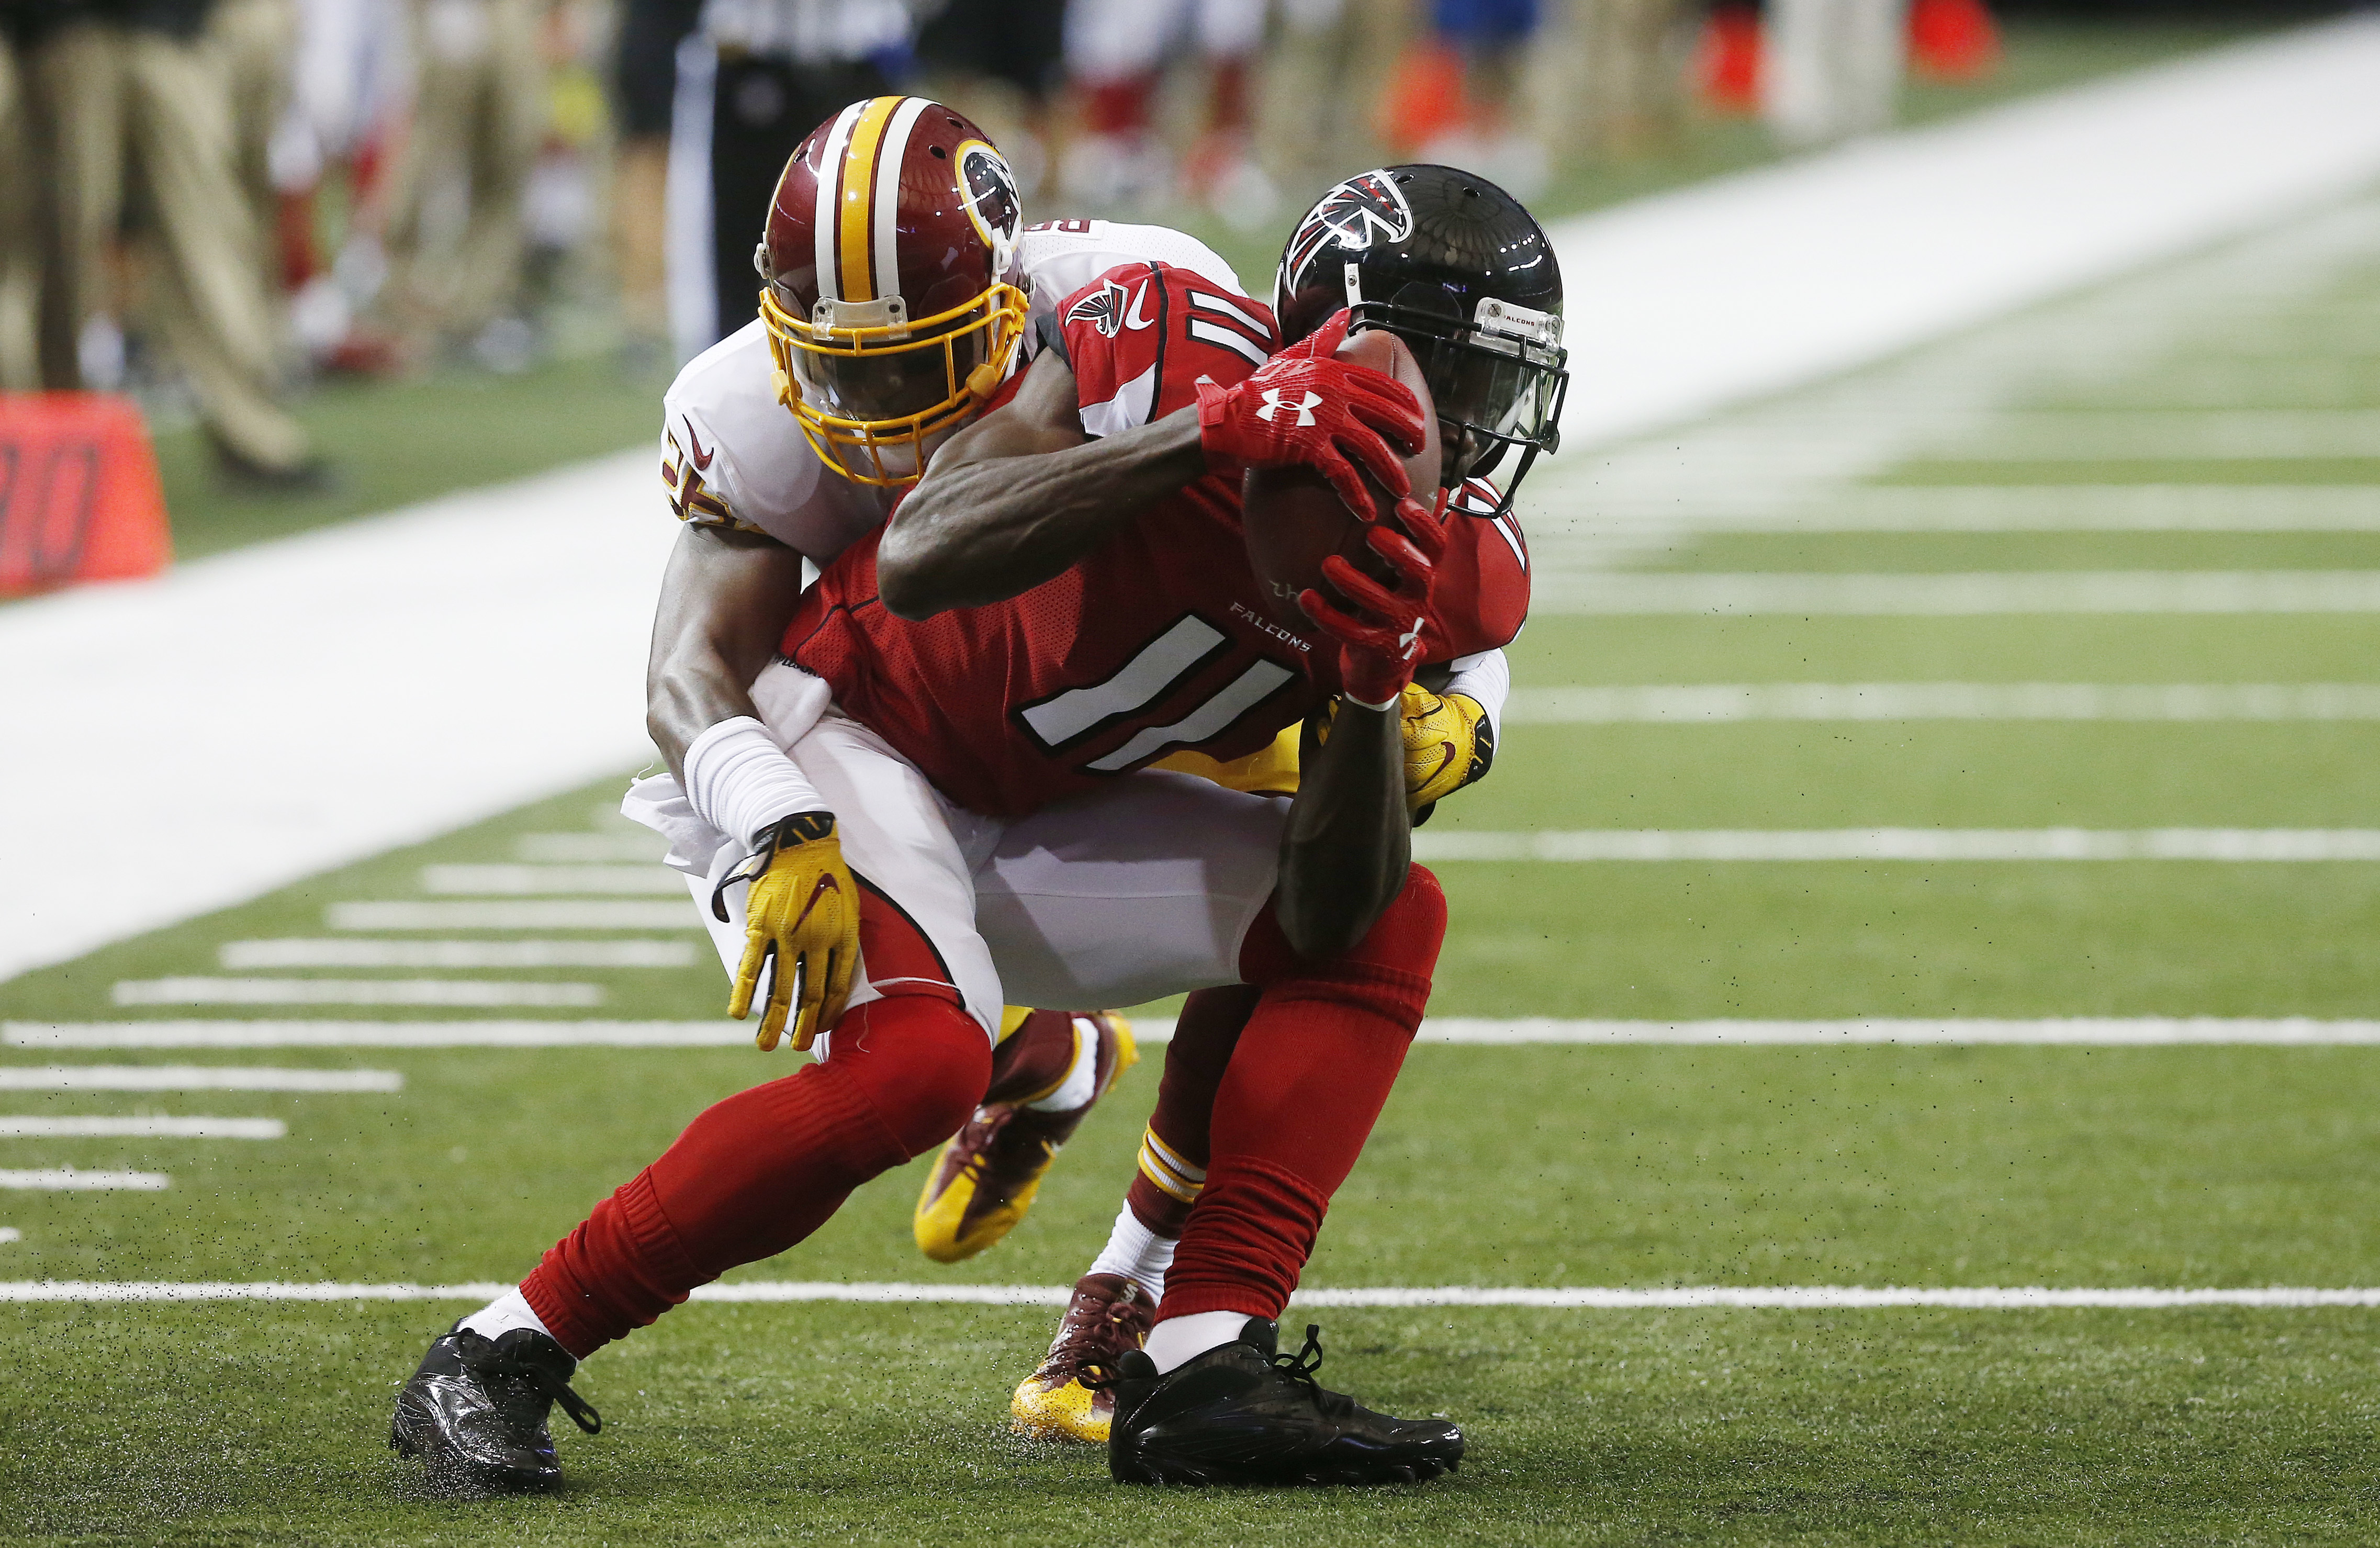 FILE - In this Aug. 11, 2016, file photo, Atlanta Falcons wide receiver Julio Jones (11) makes the catch against Washington Redskins cornerback Bashaud Breeland (26) during the first half of a preseason NFL football game in Atlanta. All-Pro receiver Julio